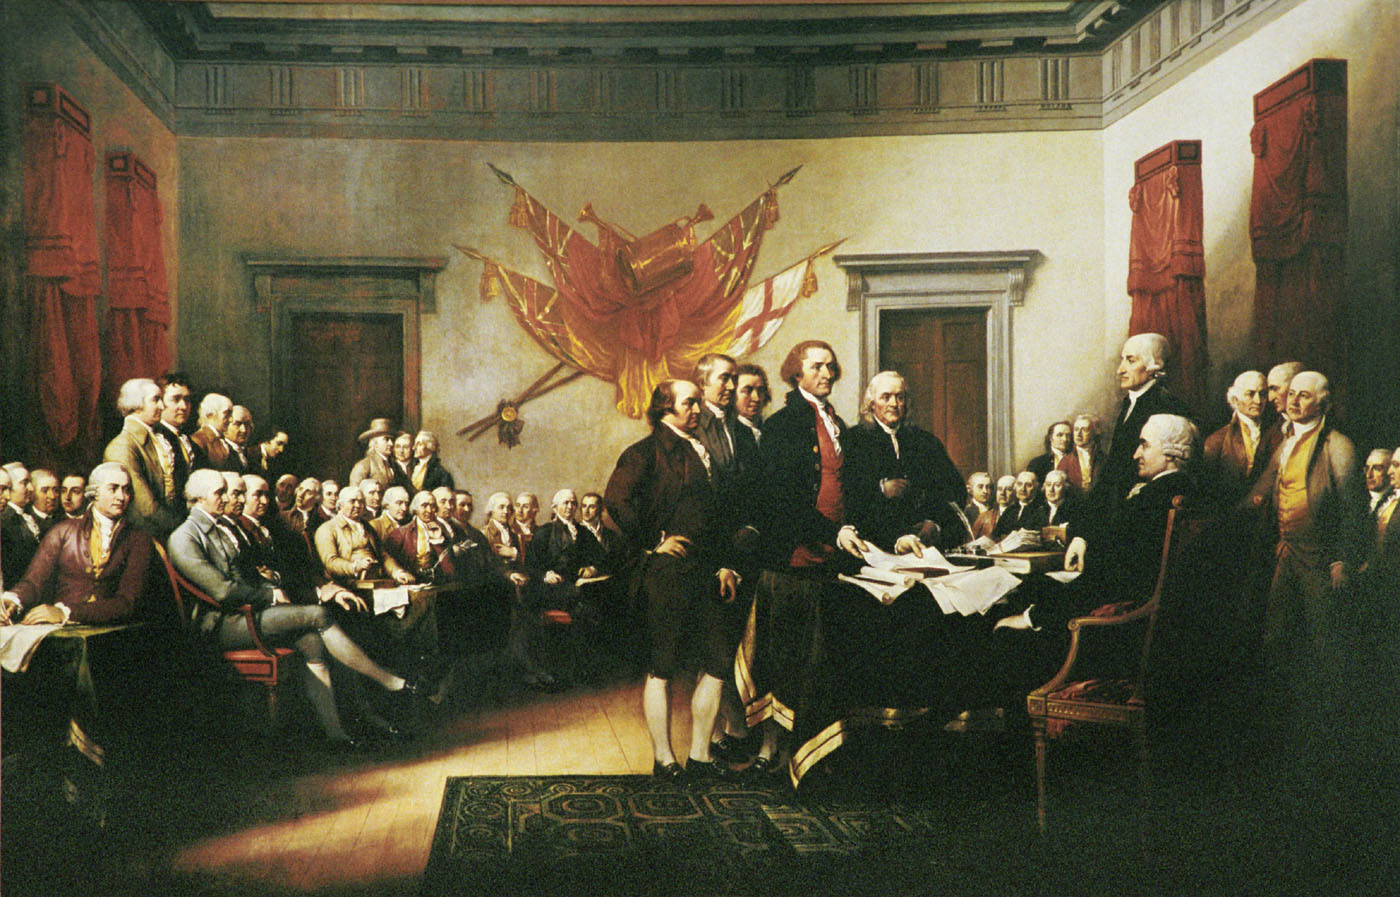 The Declaration of Independence acknowledged God